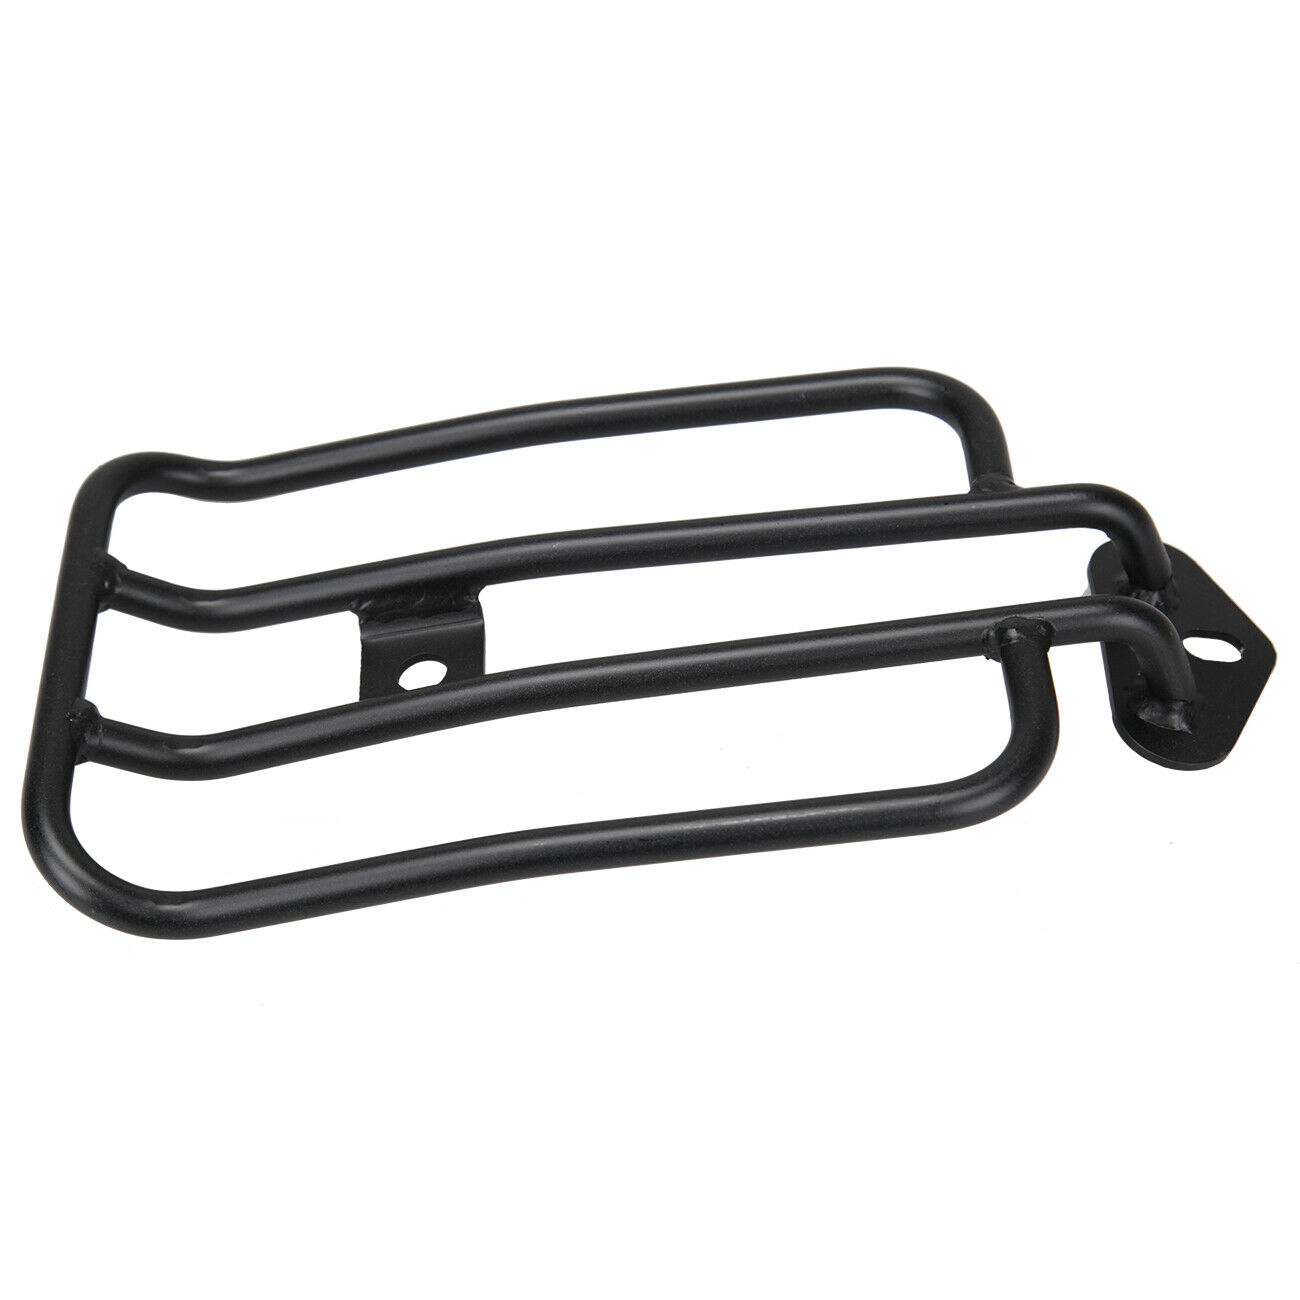 Samger Motorcycle Rear Solo <font><b>Seat</b></font> Luggage Rack Support Shelf For Harley XL Sportsters <font><b>Iron</b></font> 48 <font><b>883</b></font> XL1200 2004 2015 2016 2017 2018 image